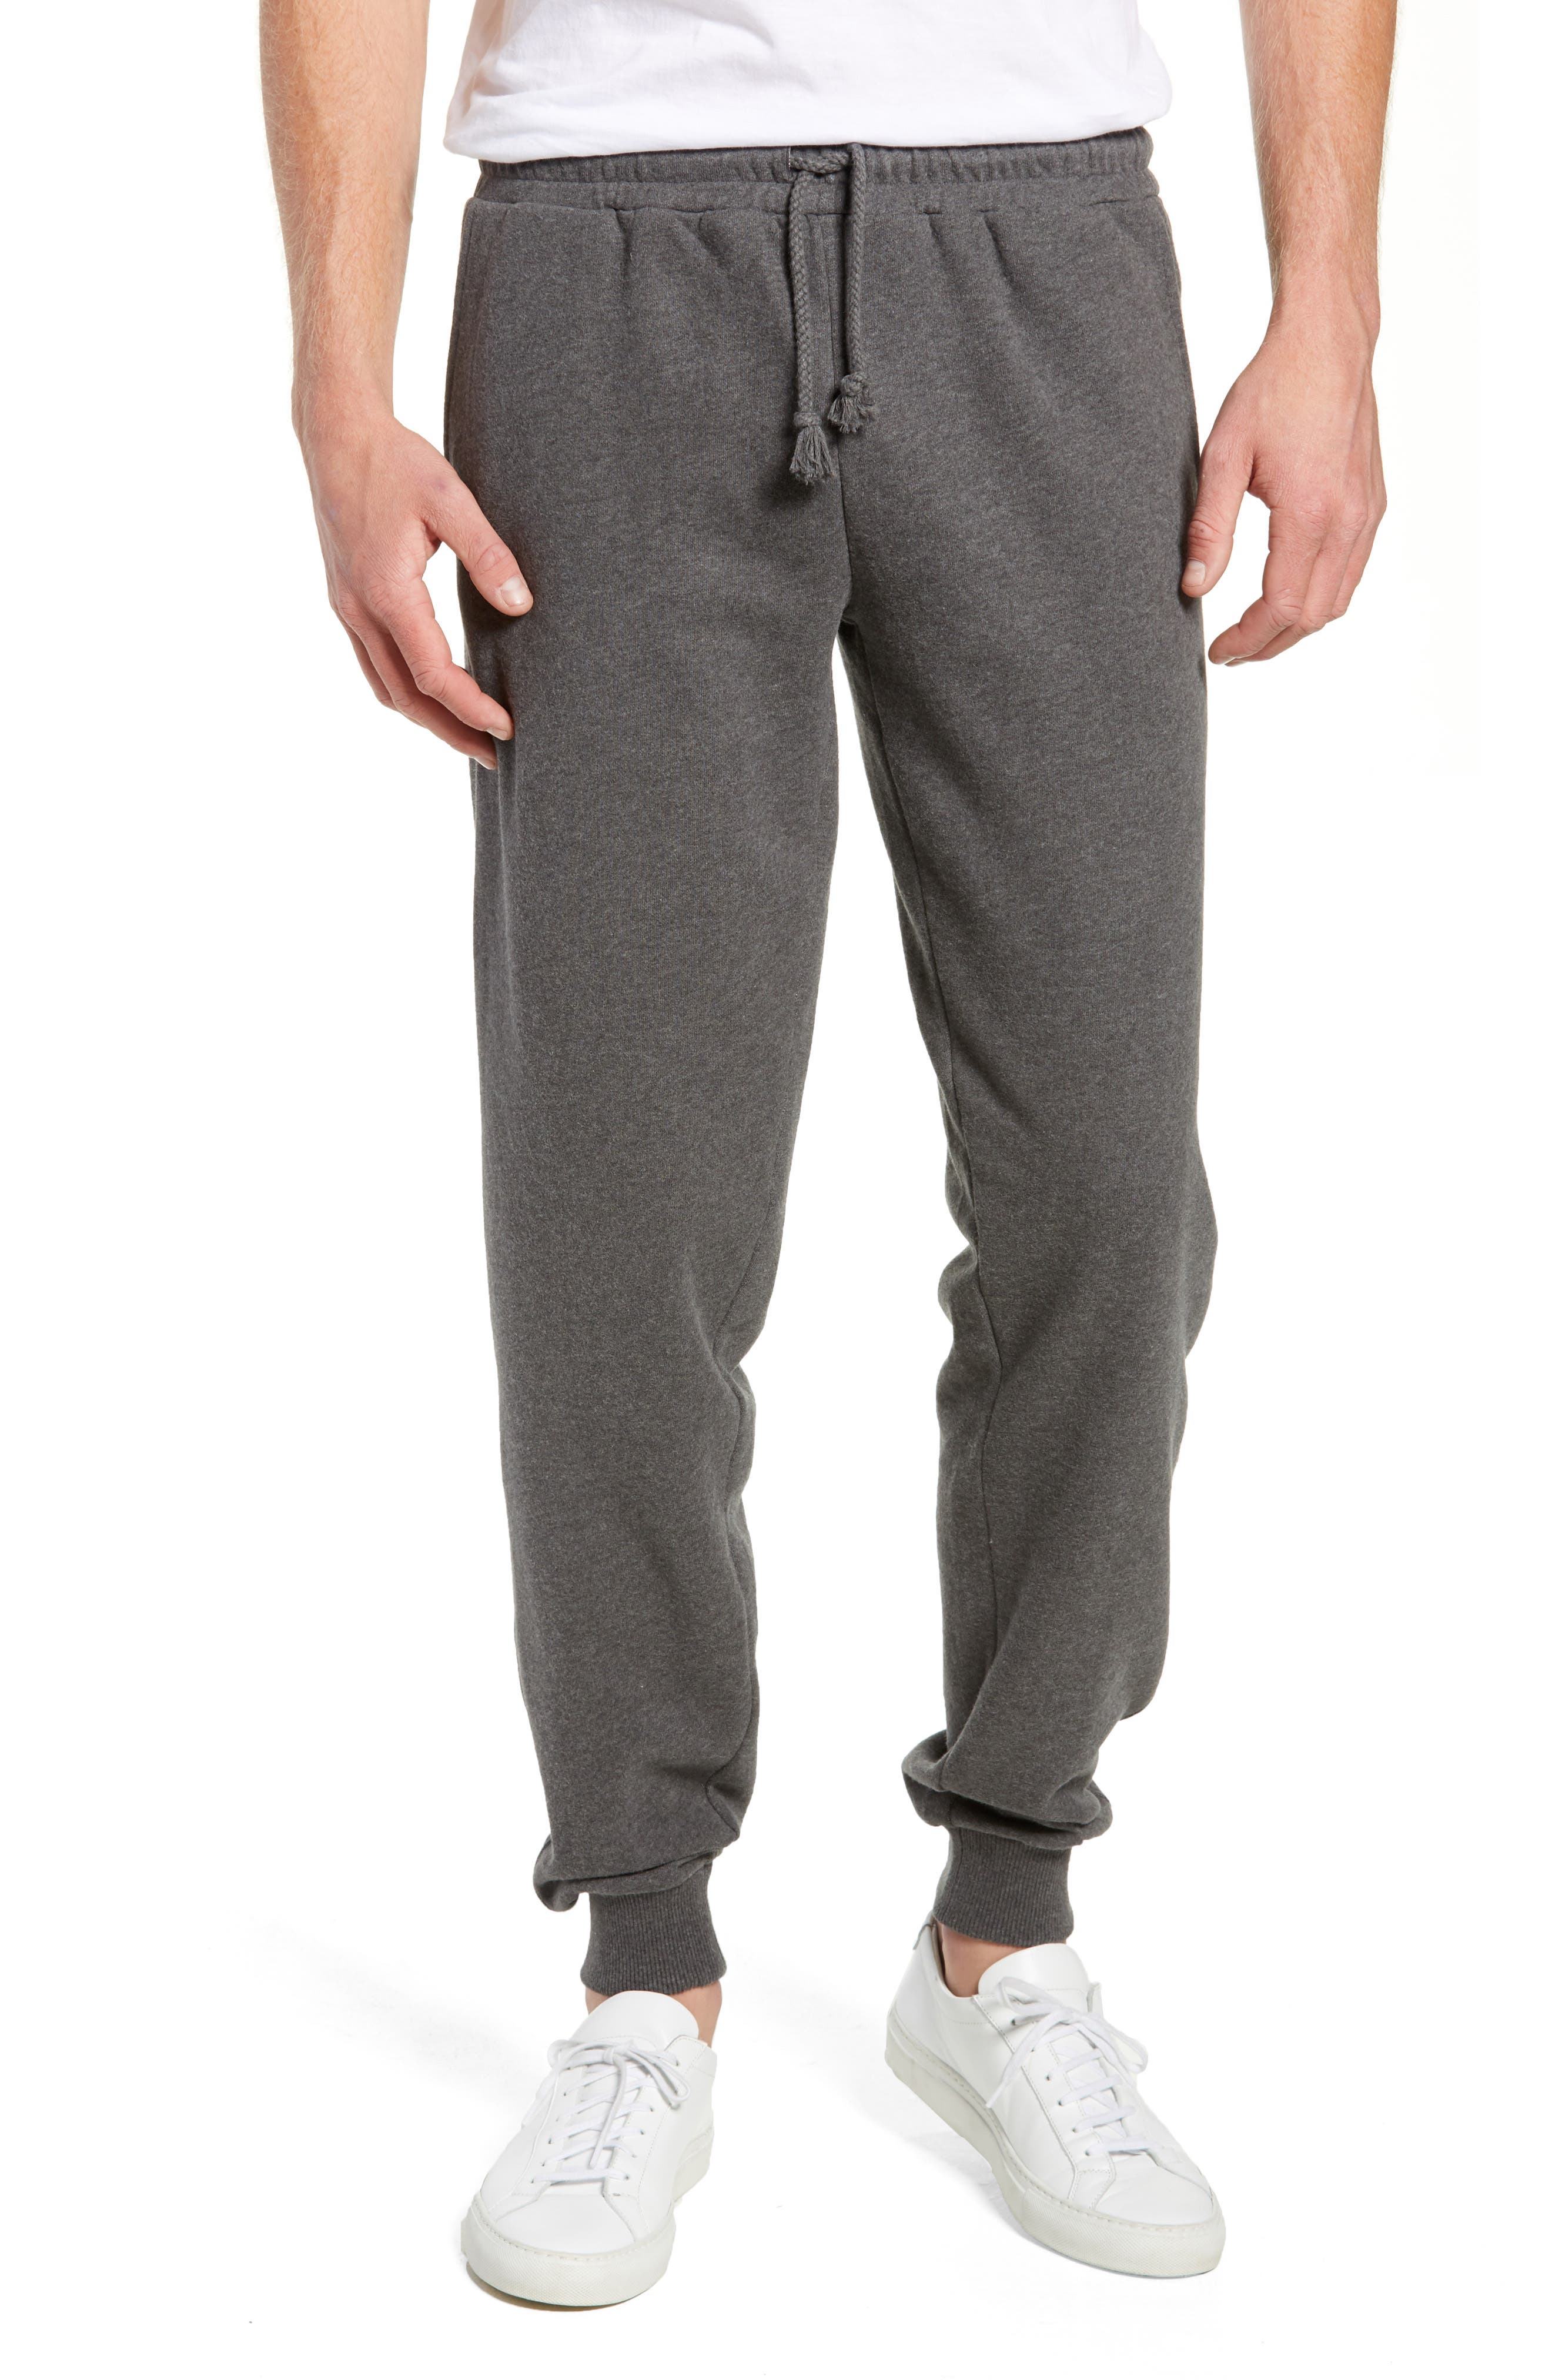 KnowledgeCotton Mélange Sweatpants,                             Main thumbnail 1, color,                             GREY MELANGE